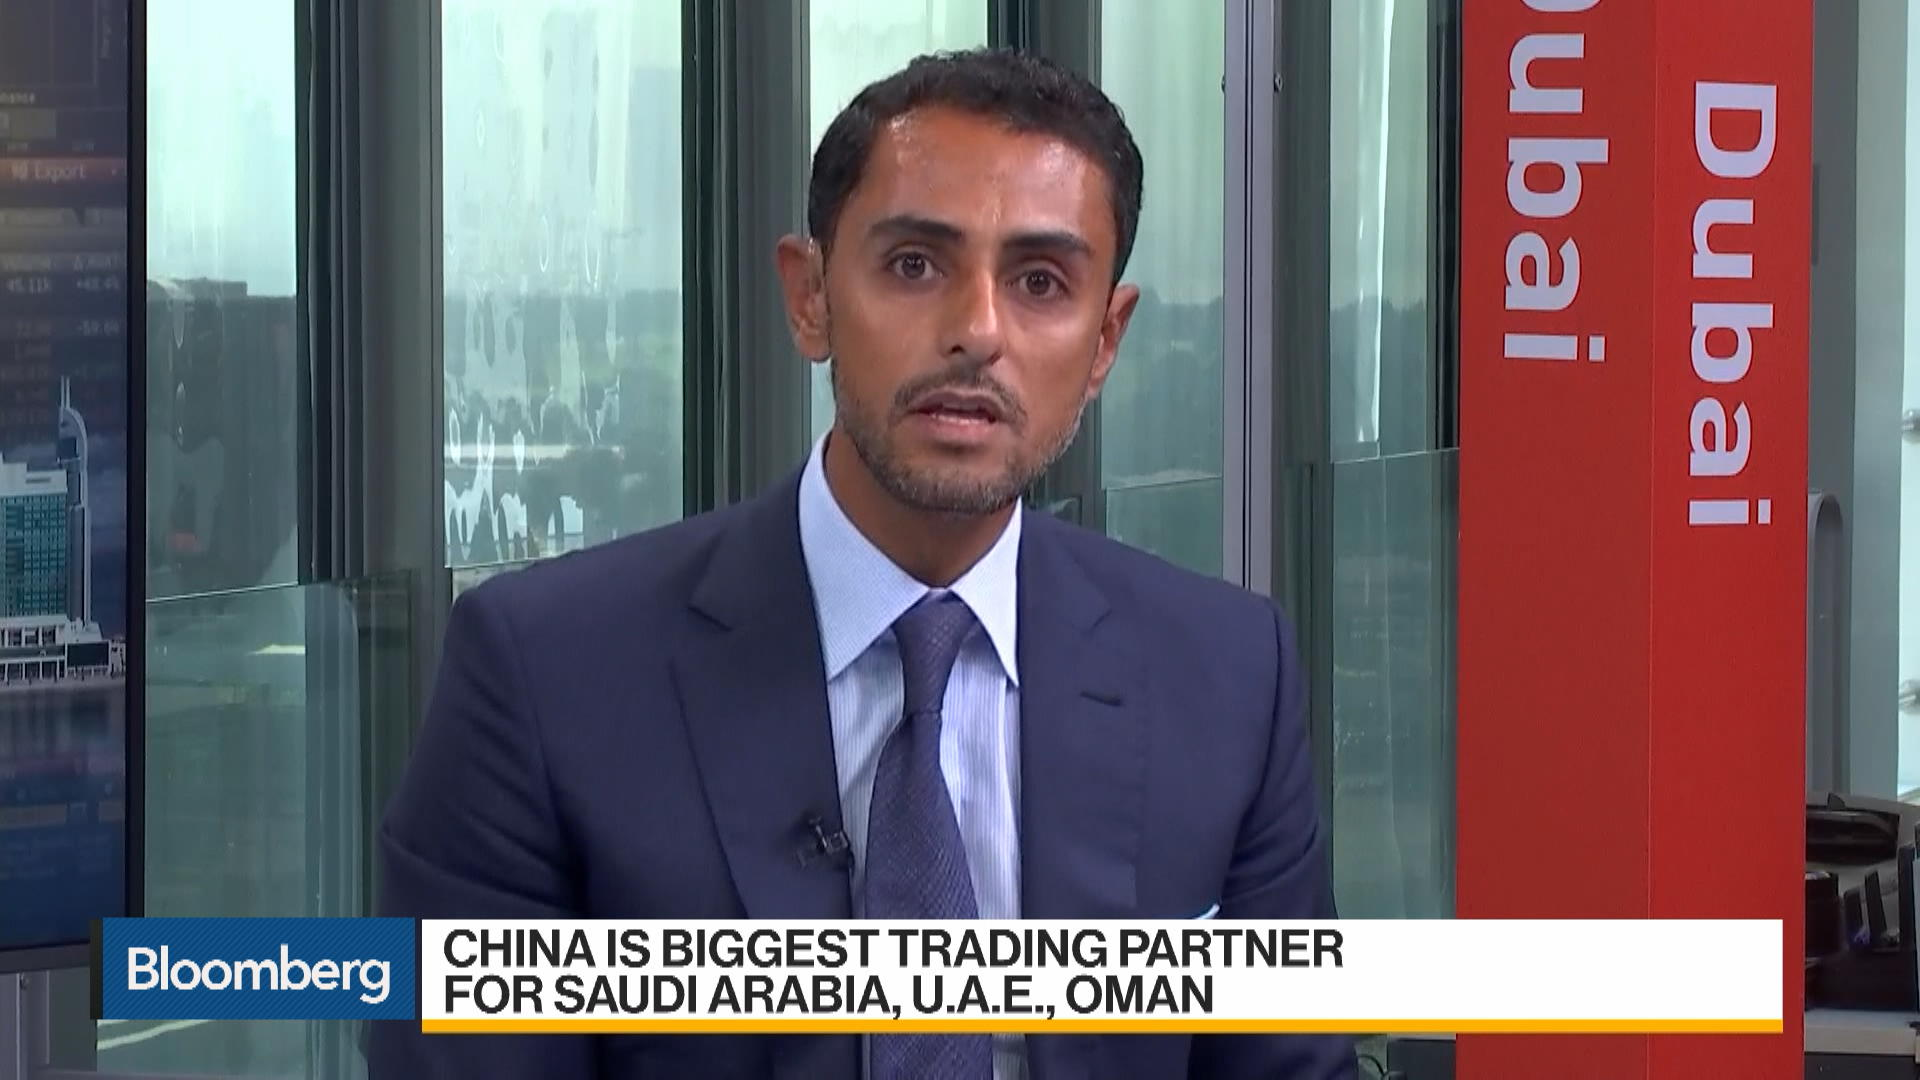 Ahmed Badr, Head of Equities for Middle East, North Africa at Credit Suisse, on Stocks